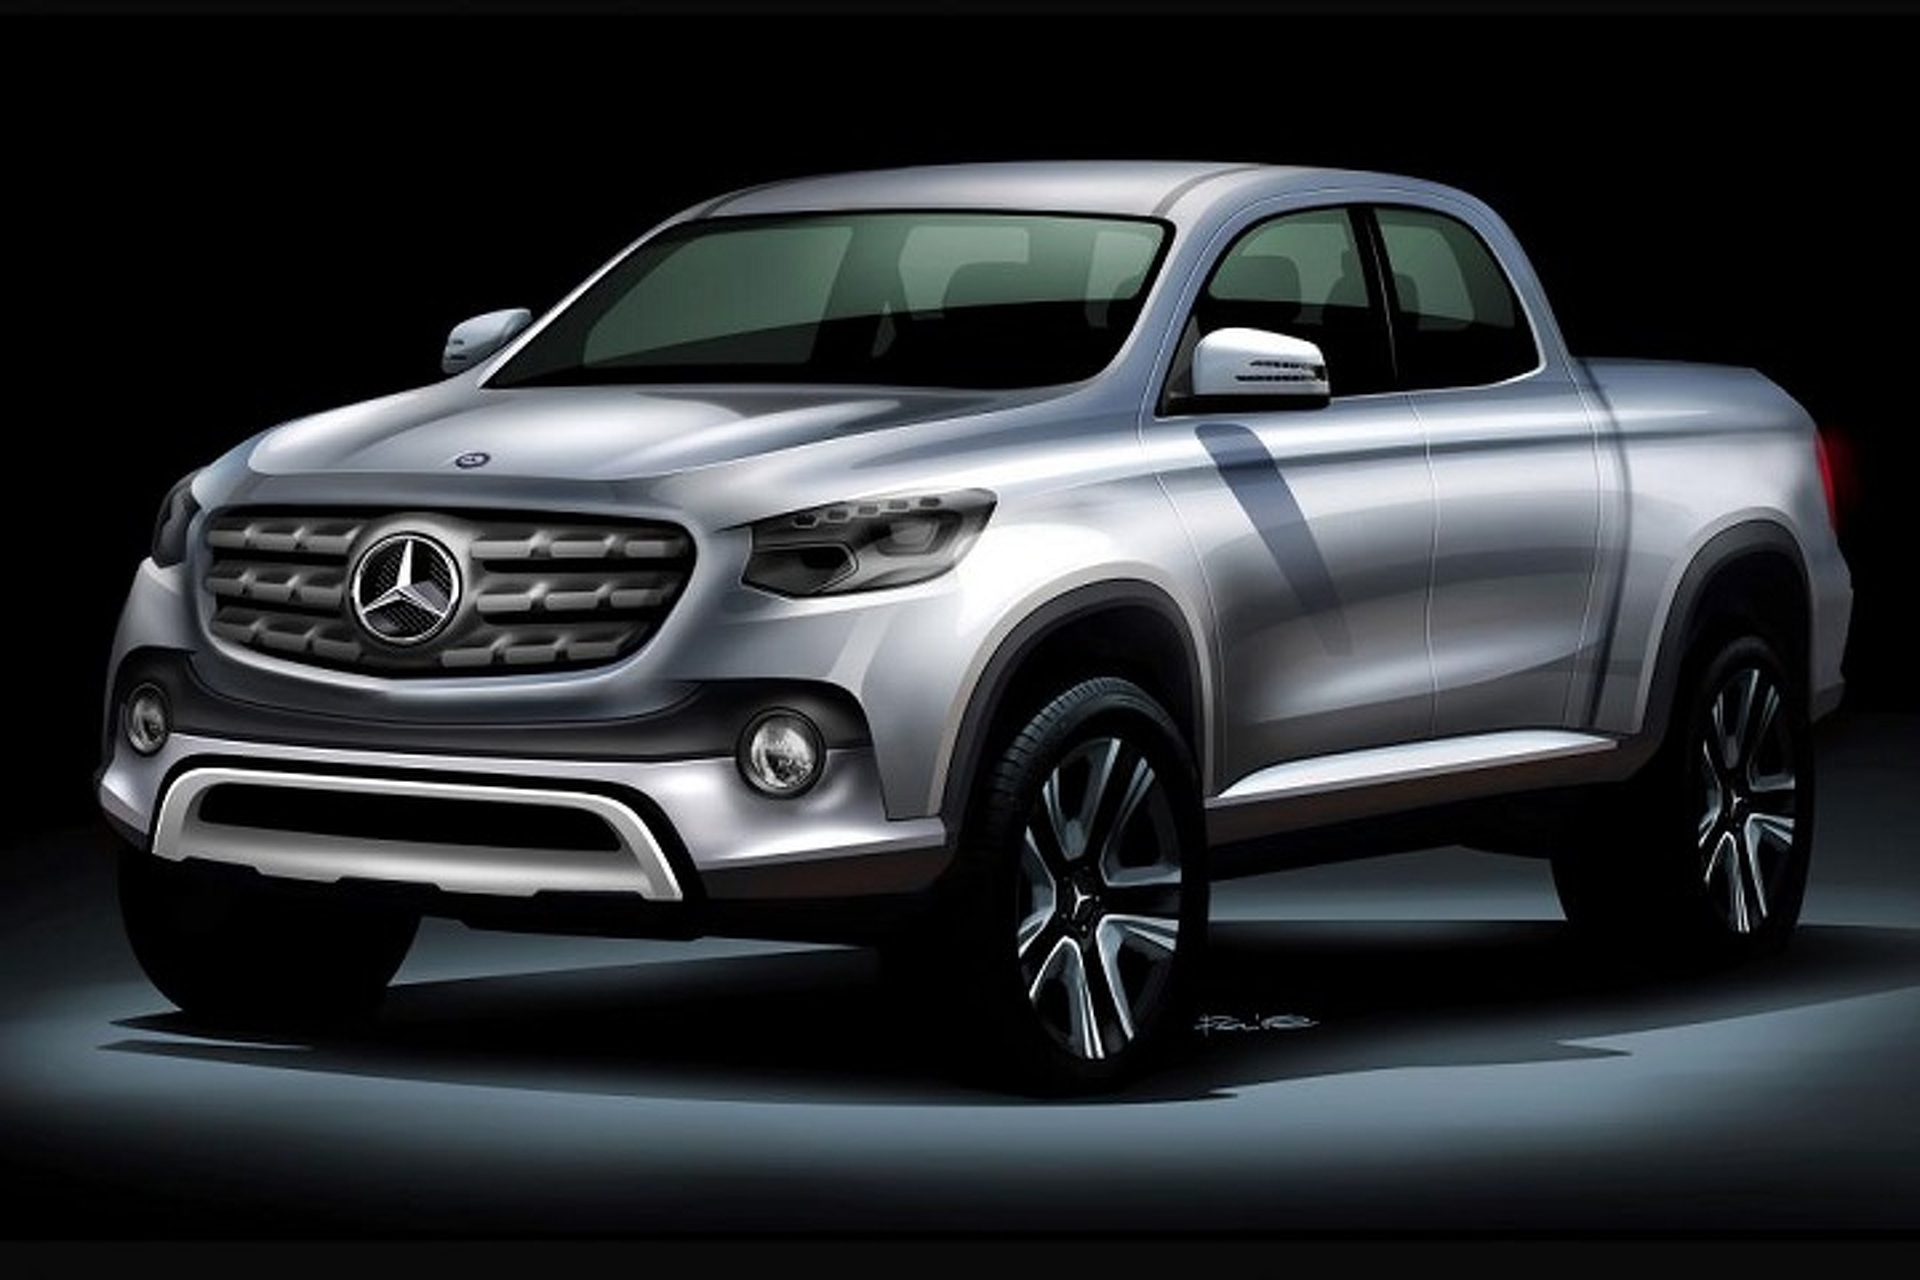 https://icdn-0.motor1.com/images/mgl/xG6Kv/s1/mercedes-benz-pickup-truck-rumored-for-paris-motor-show-debut.jpg